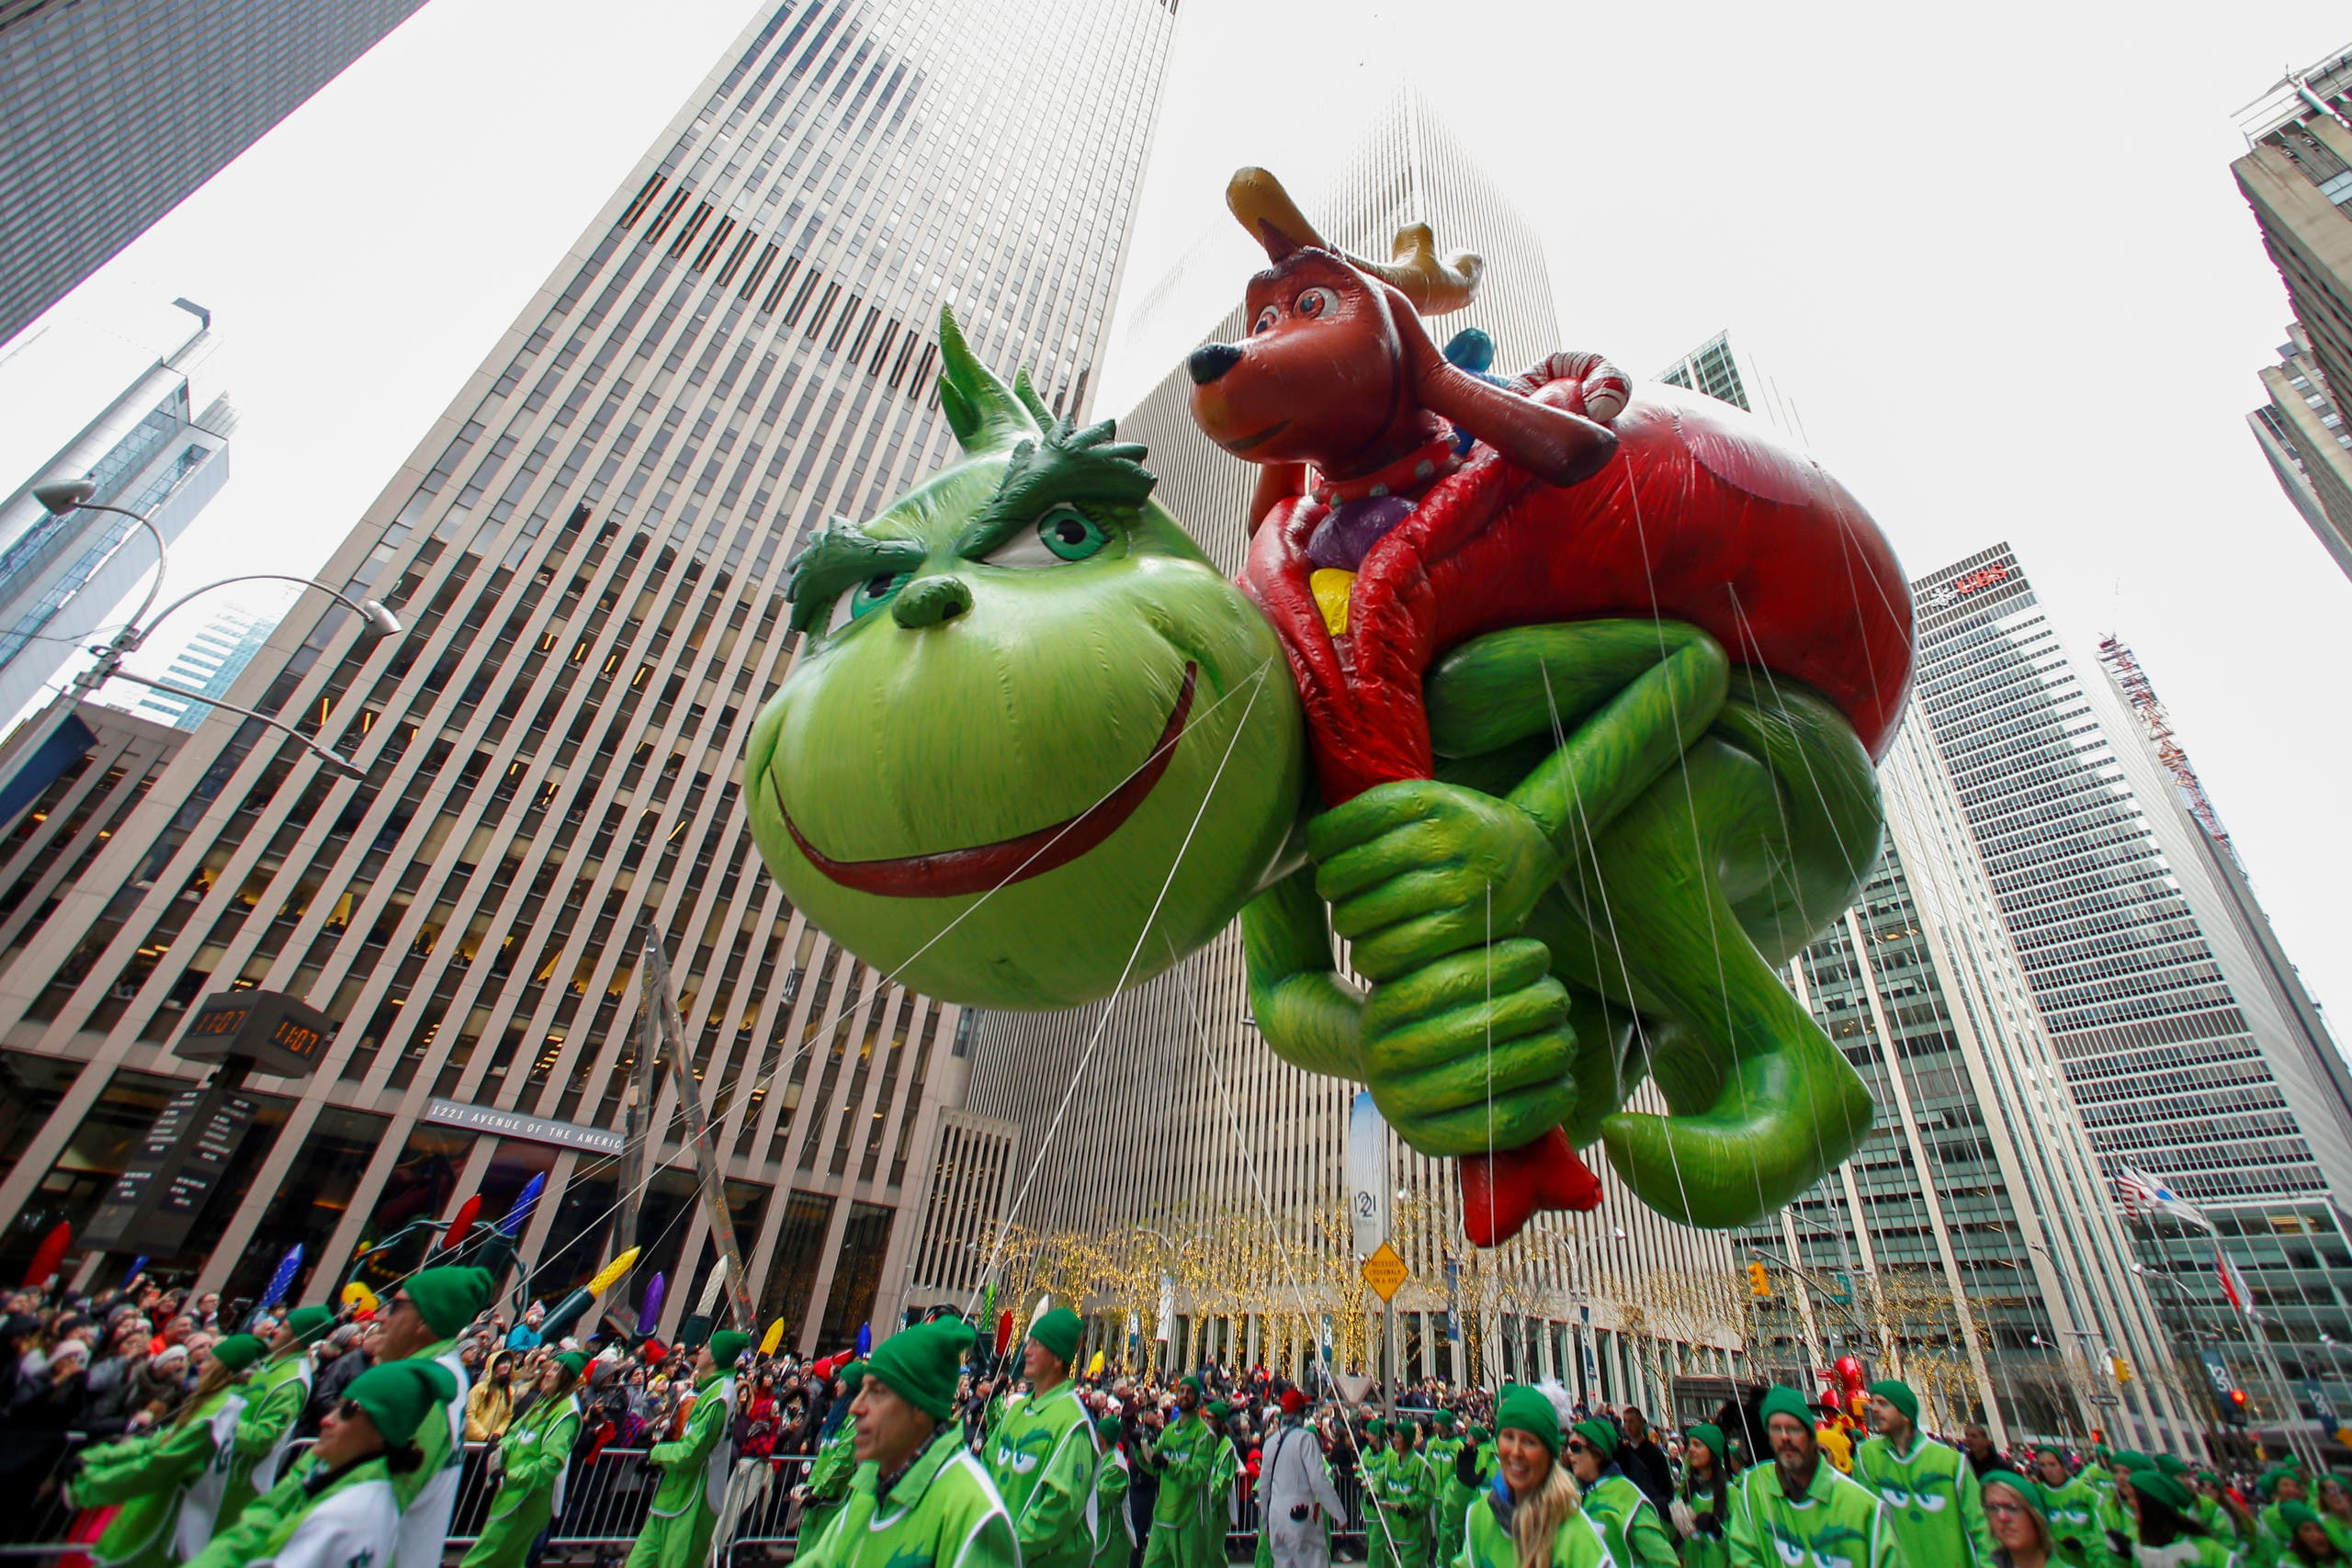 The Dr Seuss' The Grinch balloon is carried during the 93rd Macy's Thanksgiving Day Parade in New York, US, November 28, 2019. (Reuters)